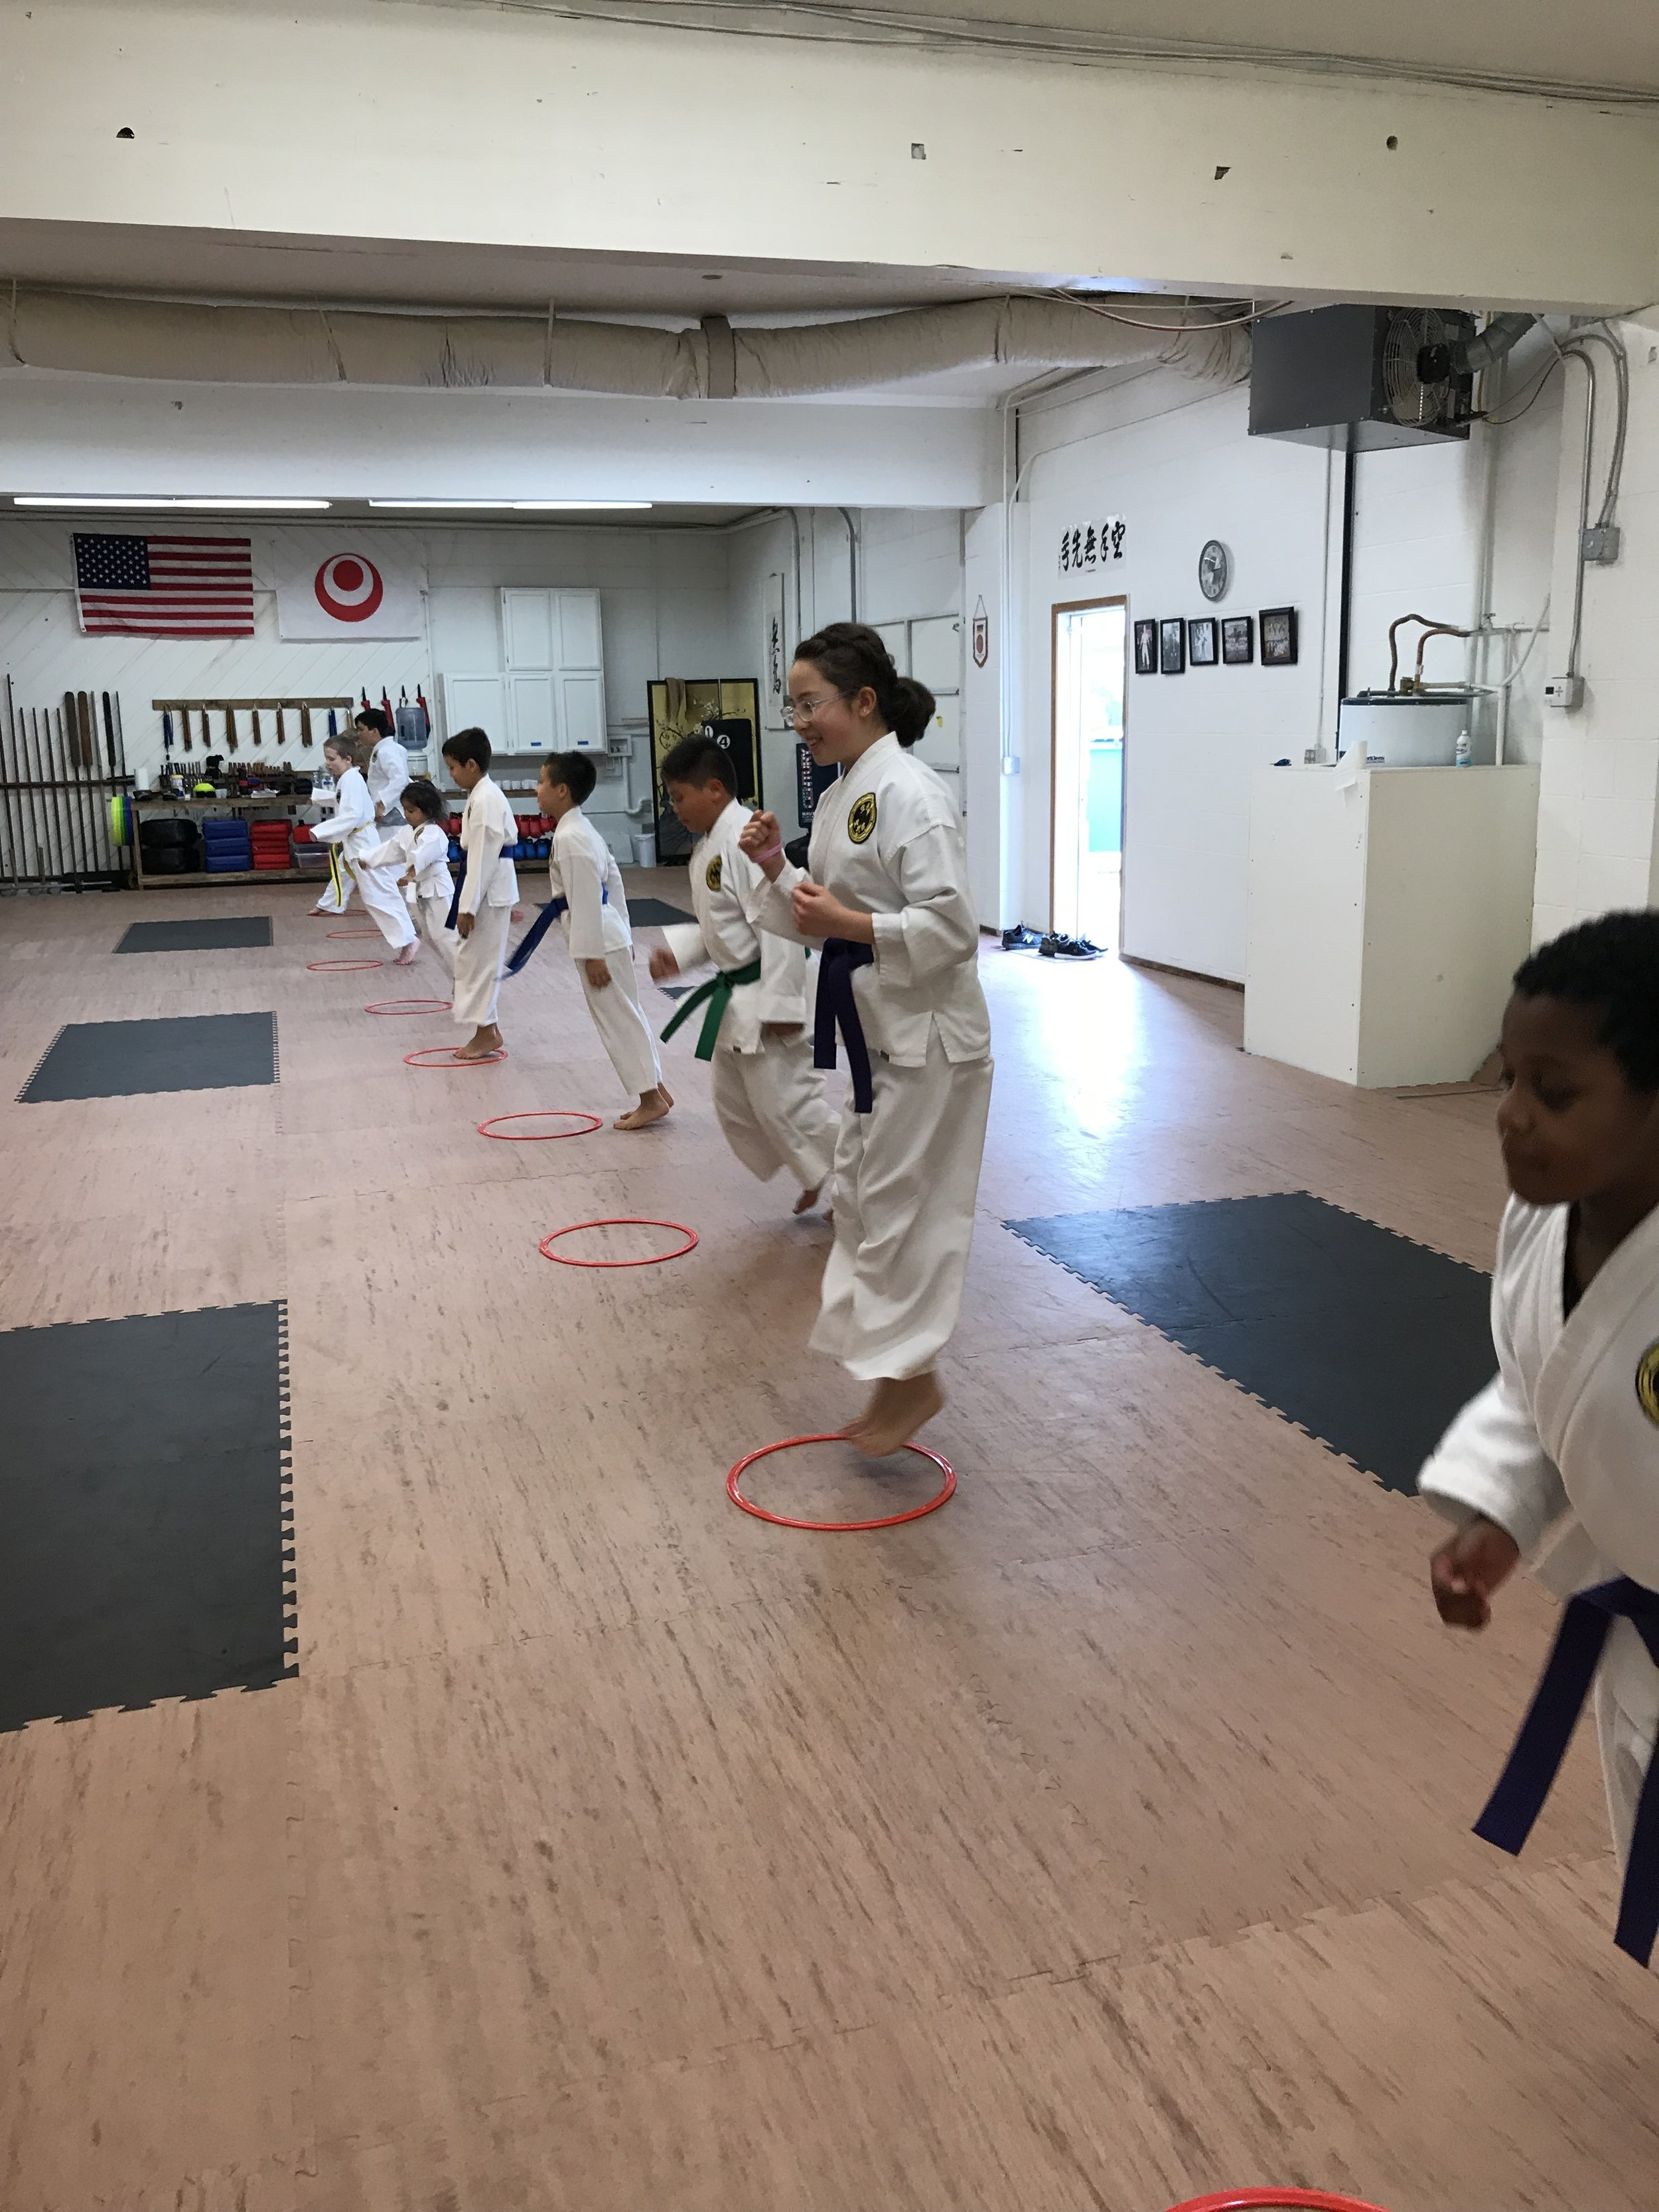 Too cool - They're just plain cool! Kids with learning and attention issues can often feel awkward or socially out of the loop. But lots of kids think martial arts are cool. It's hard not to feel special when you're wearing martial arts gear and breaking boards in half.